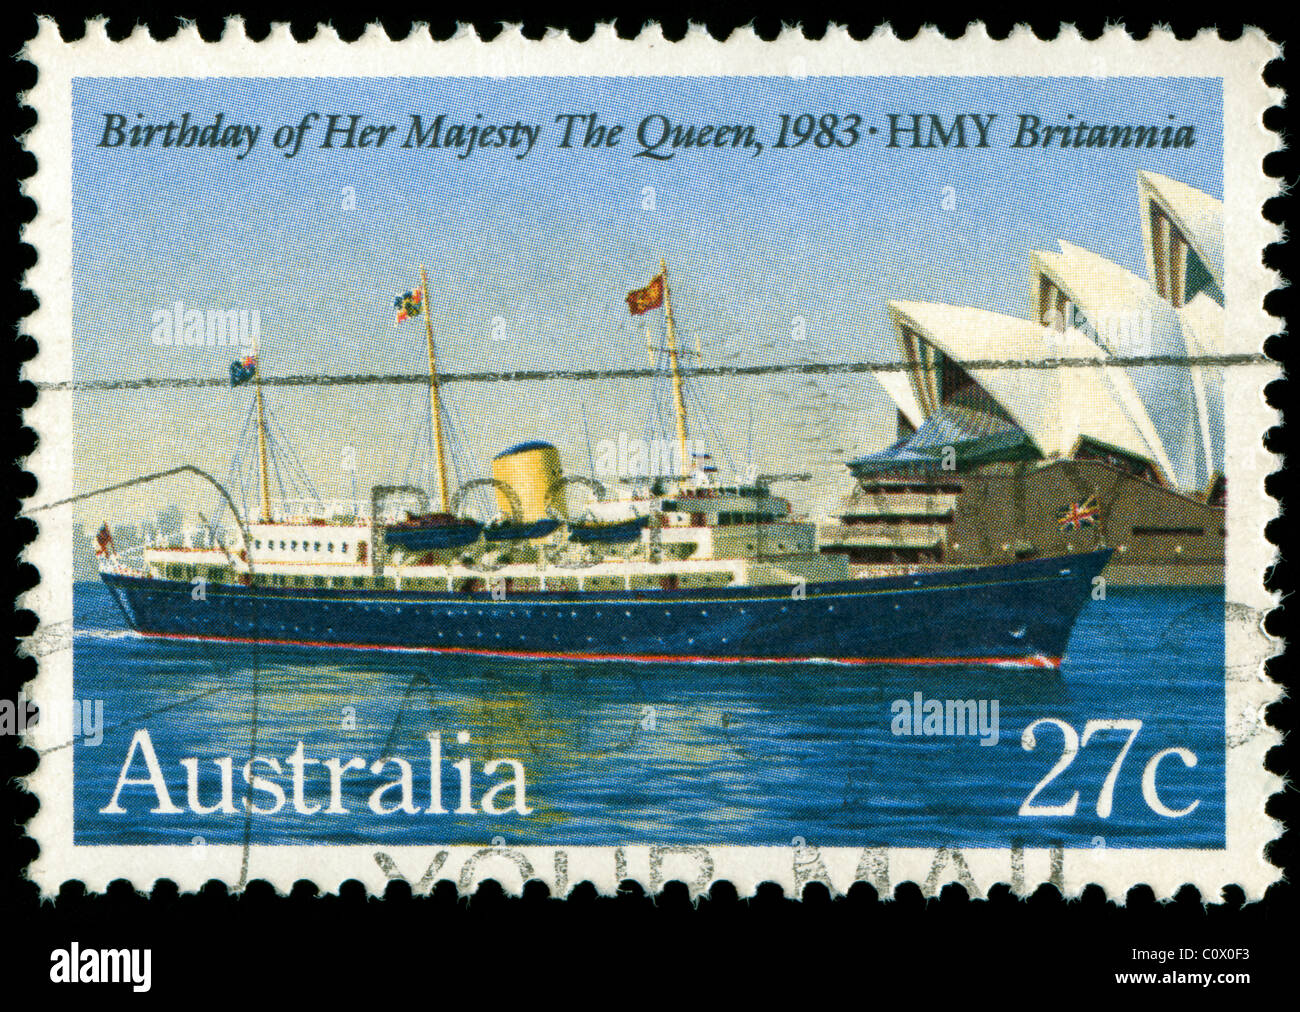 Stamp from Australia commemorating the birthday of the Queen 1983 - Stock Image